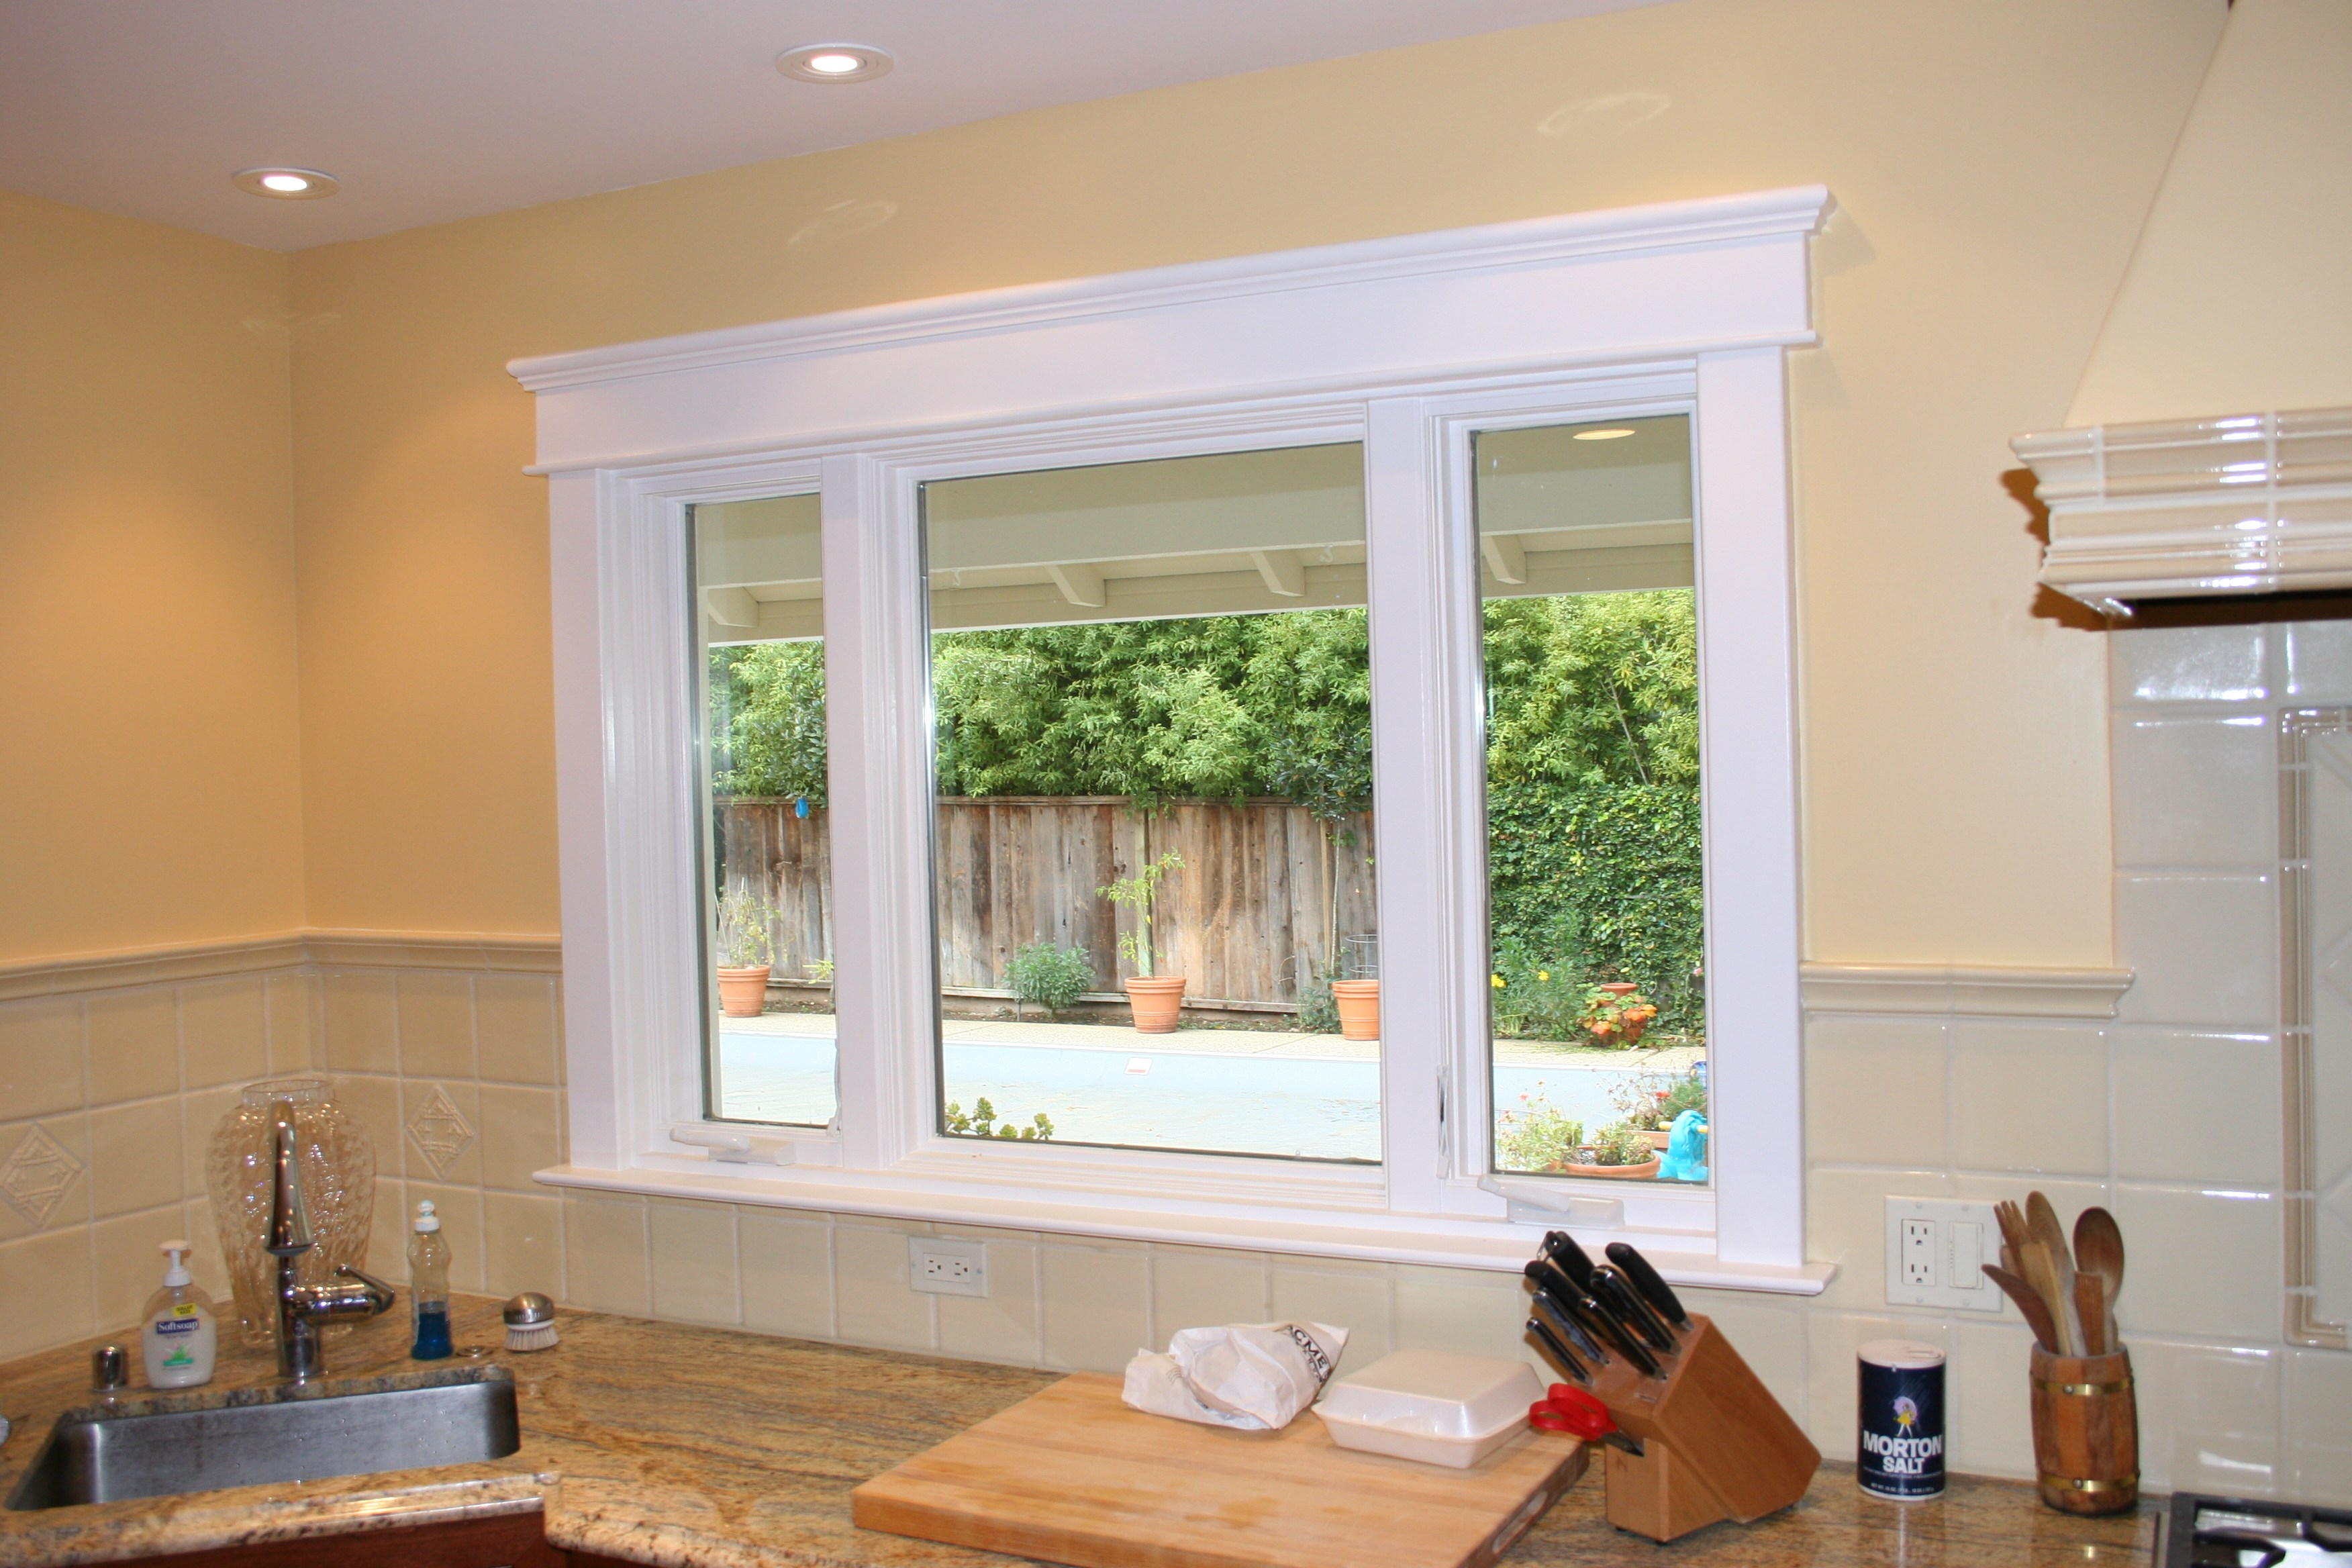 Viewing gallery for interior window trim for Interior windows